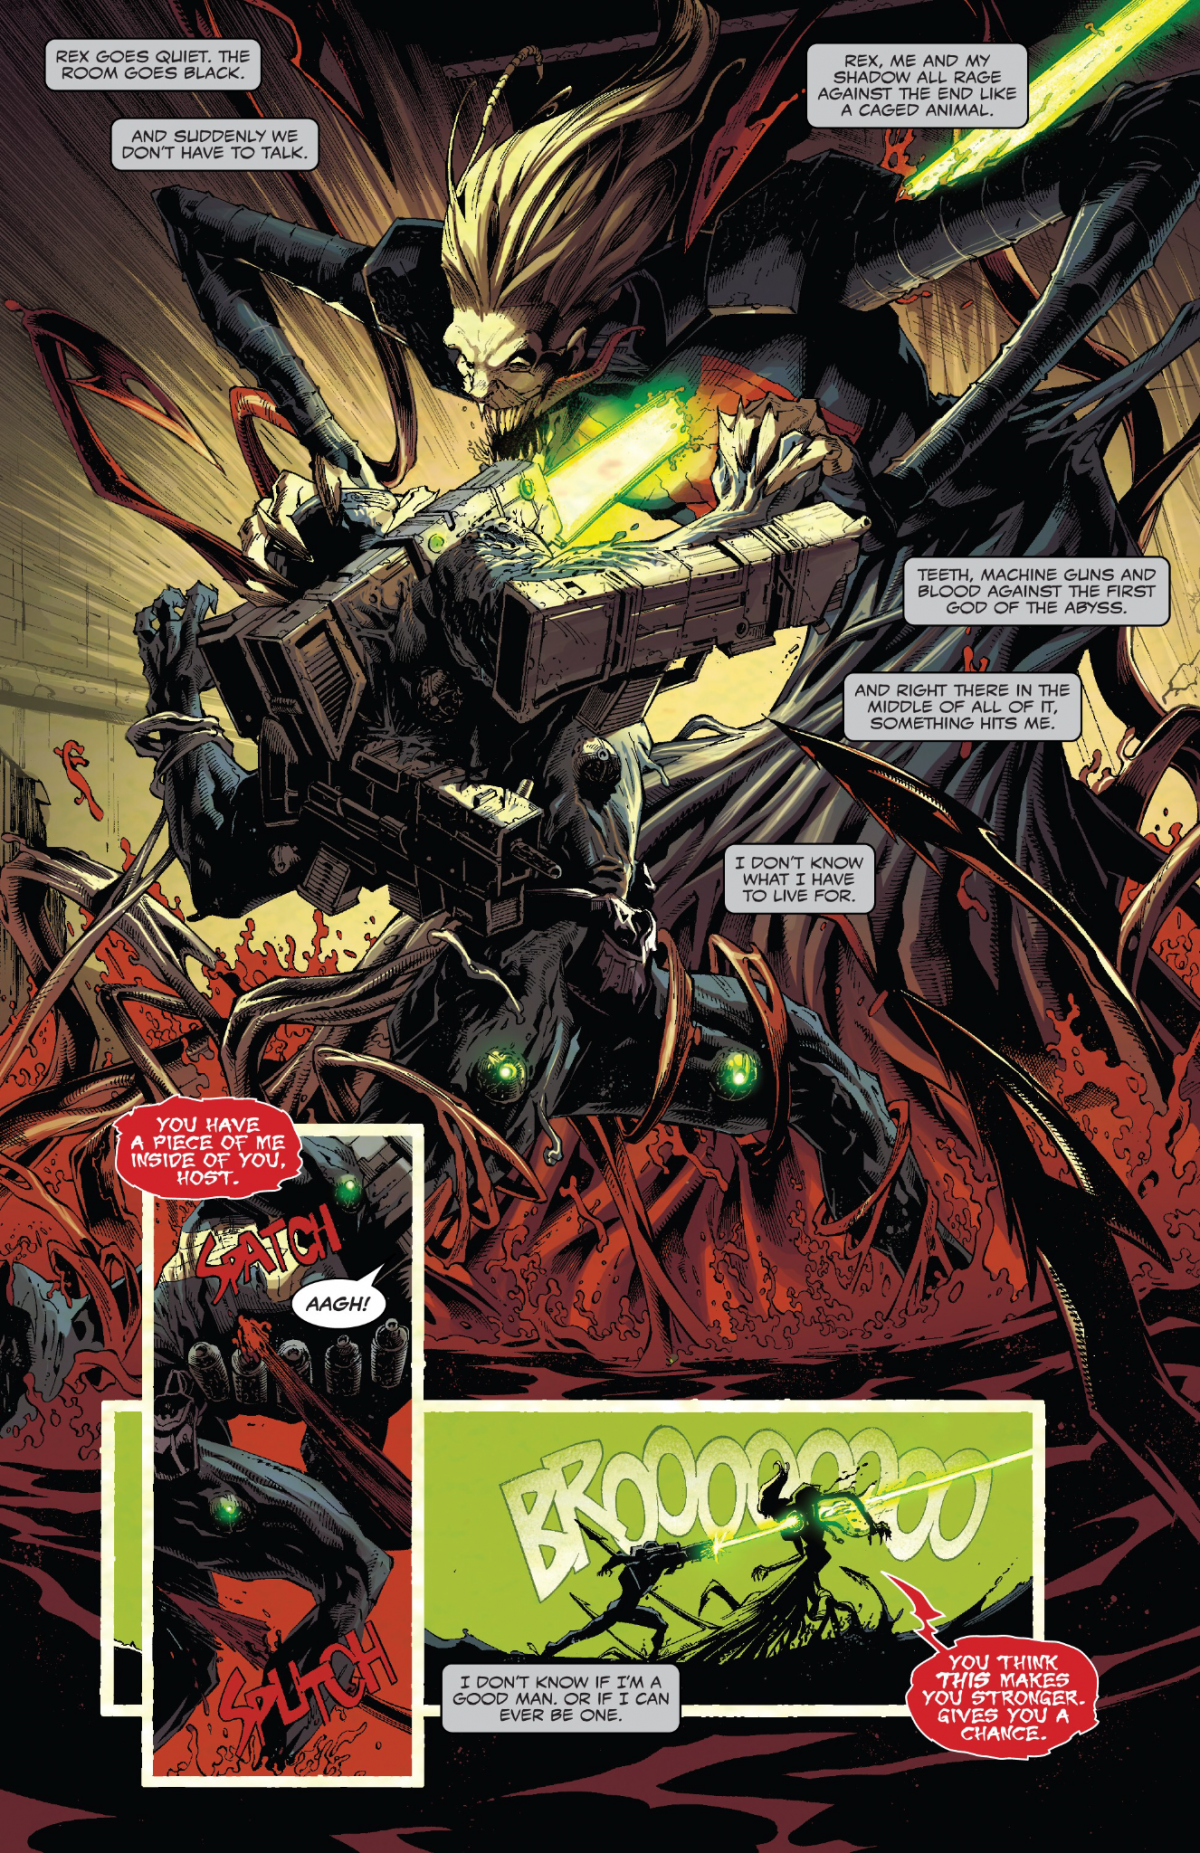 Ryan Stegman And Donny Cates' VENOM Is A Brain-Munchingly Great